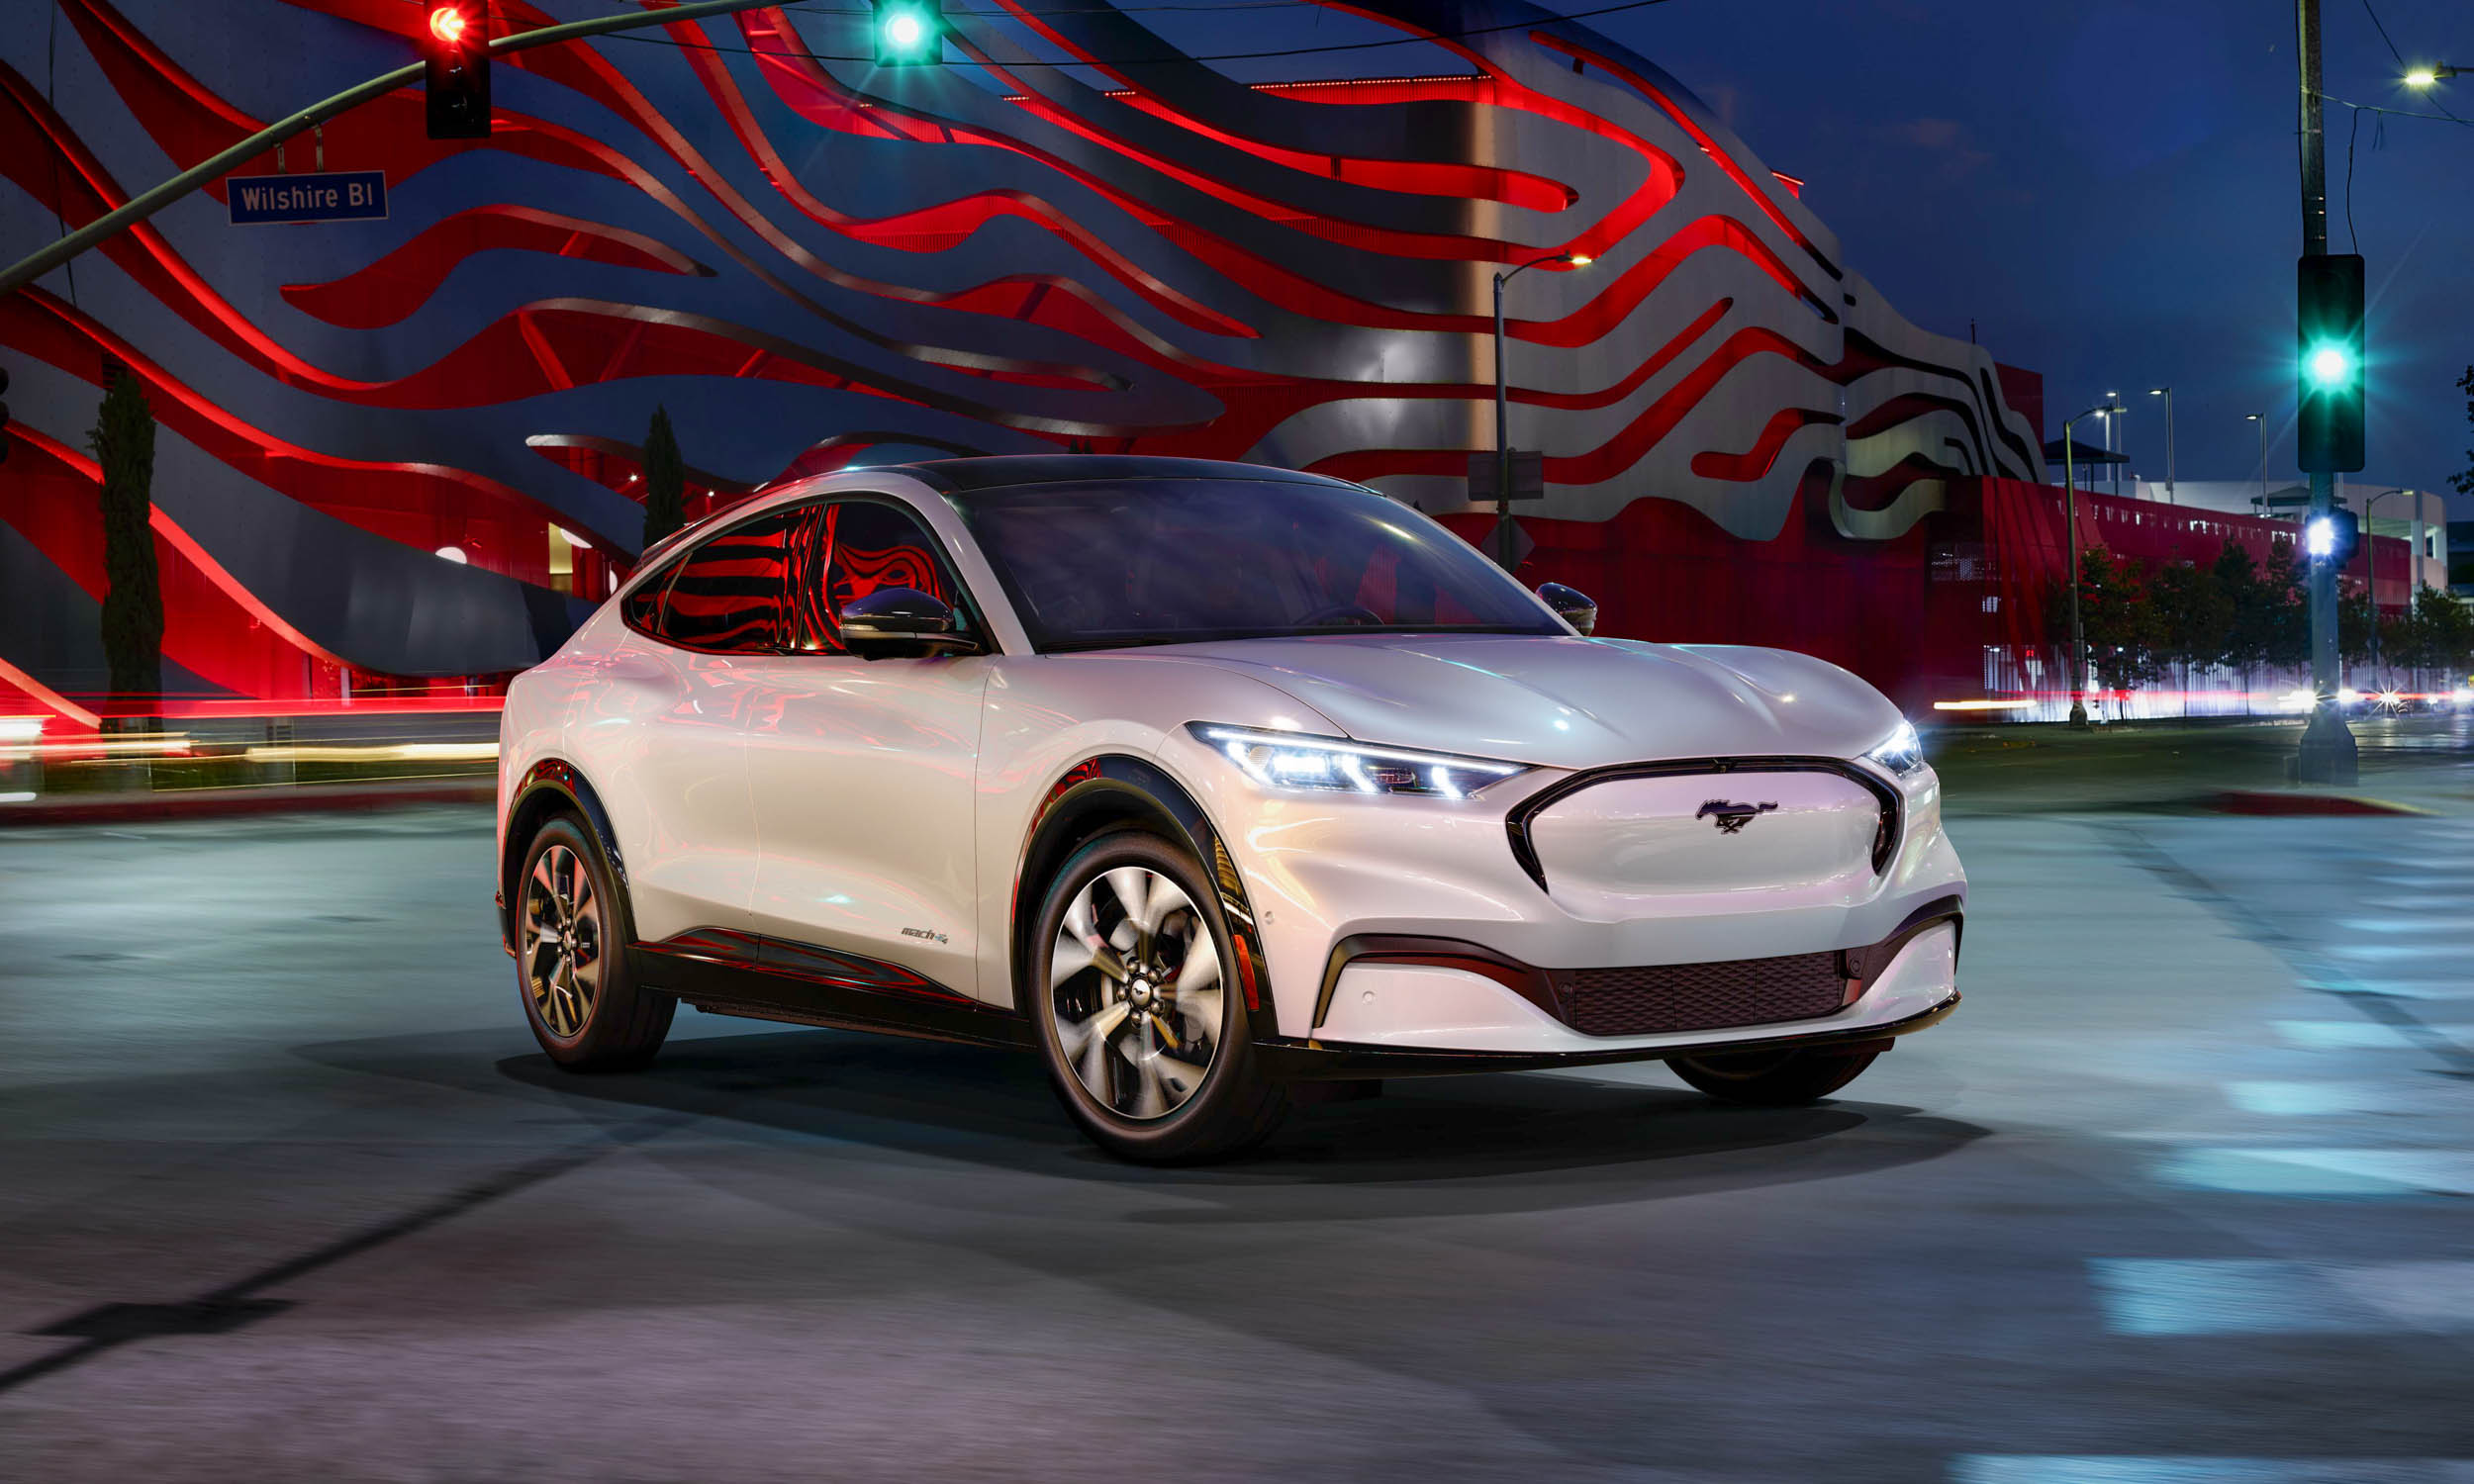 2021 ford mustang mache specifications and prices